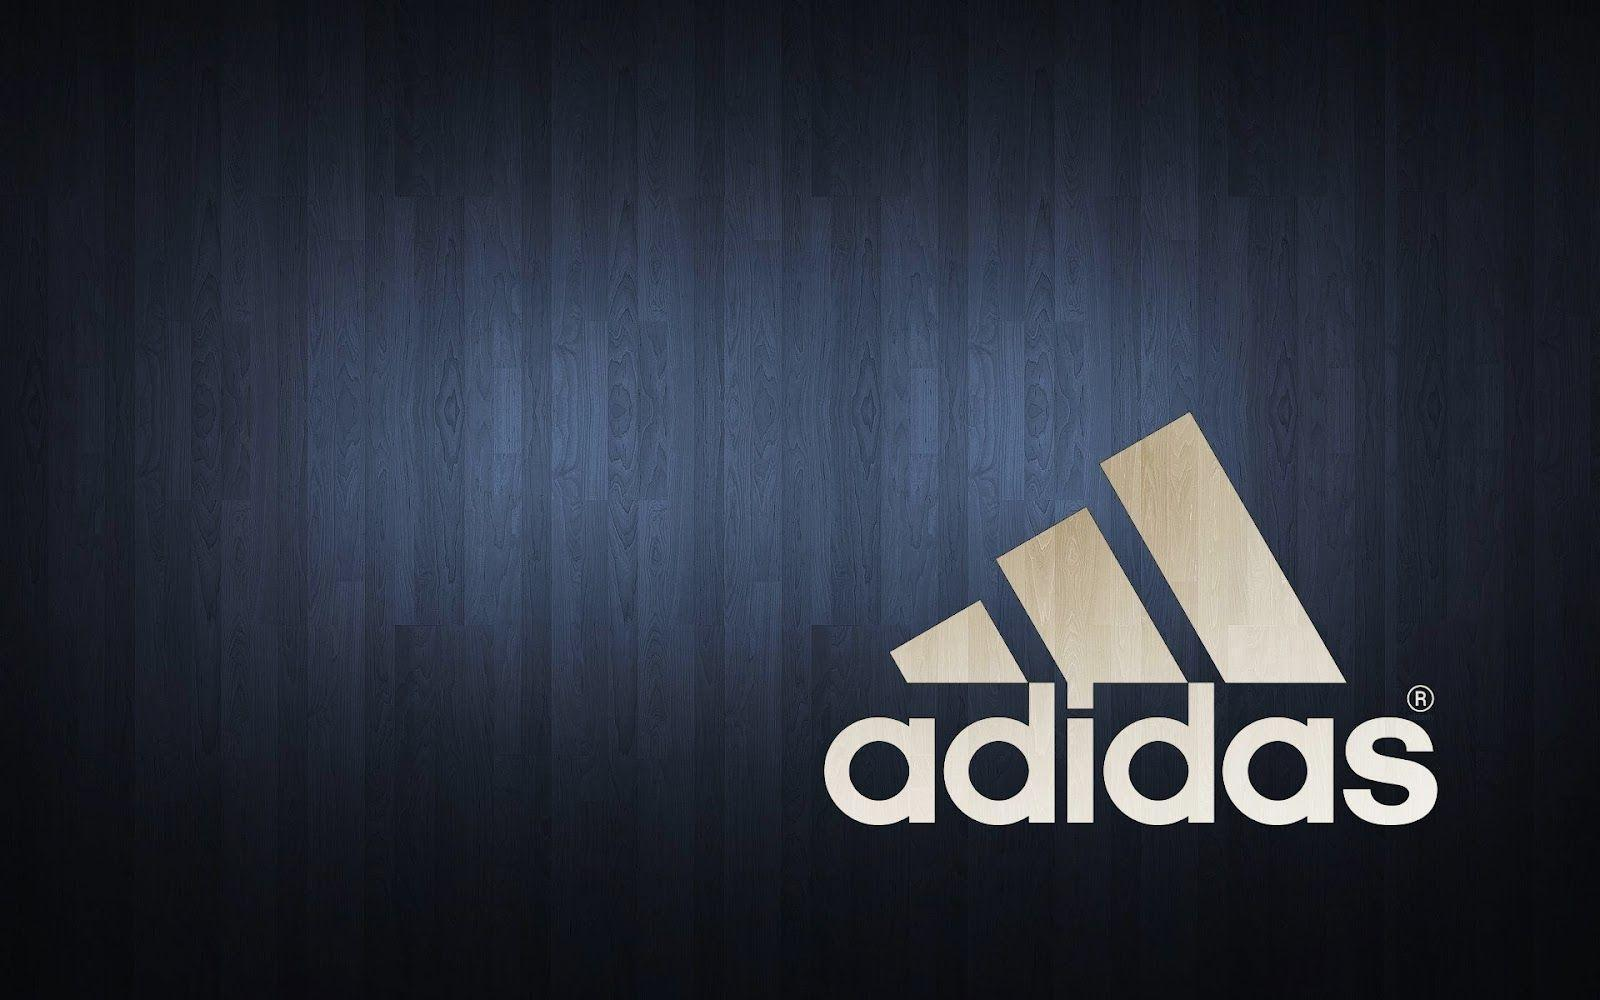 Adidas Logo Wallpapers - Wallpaper Cave